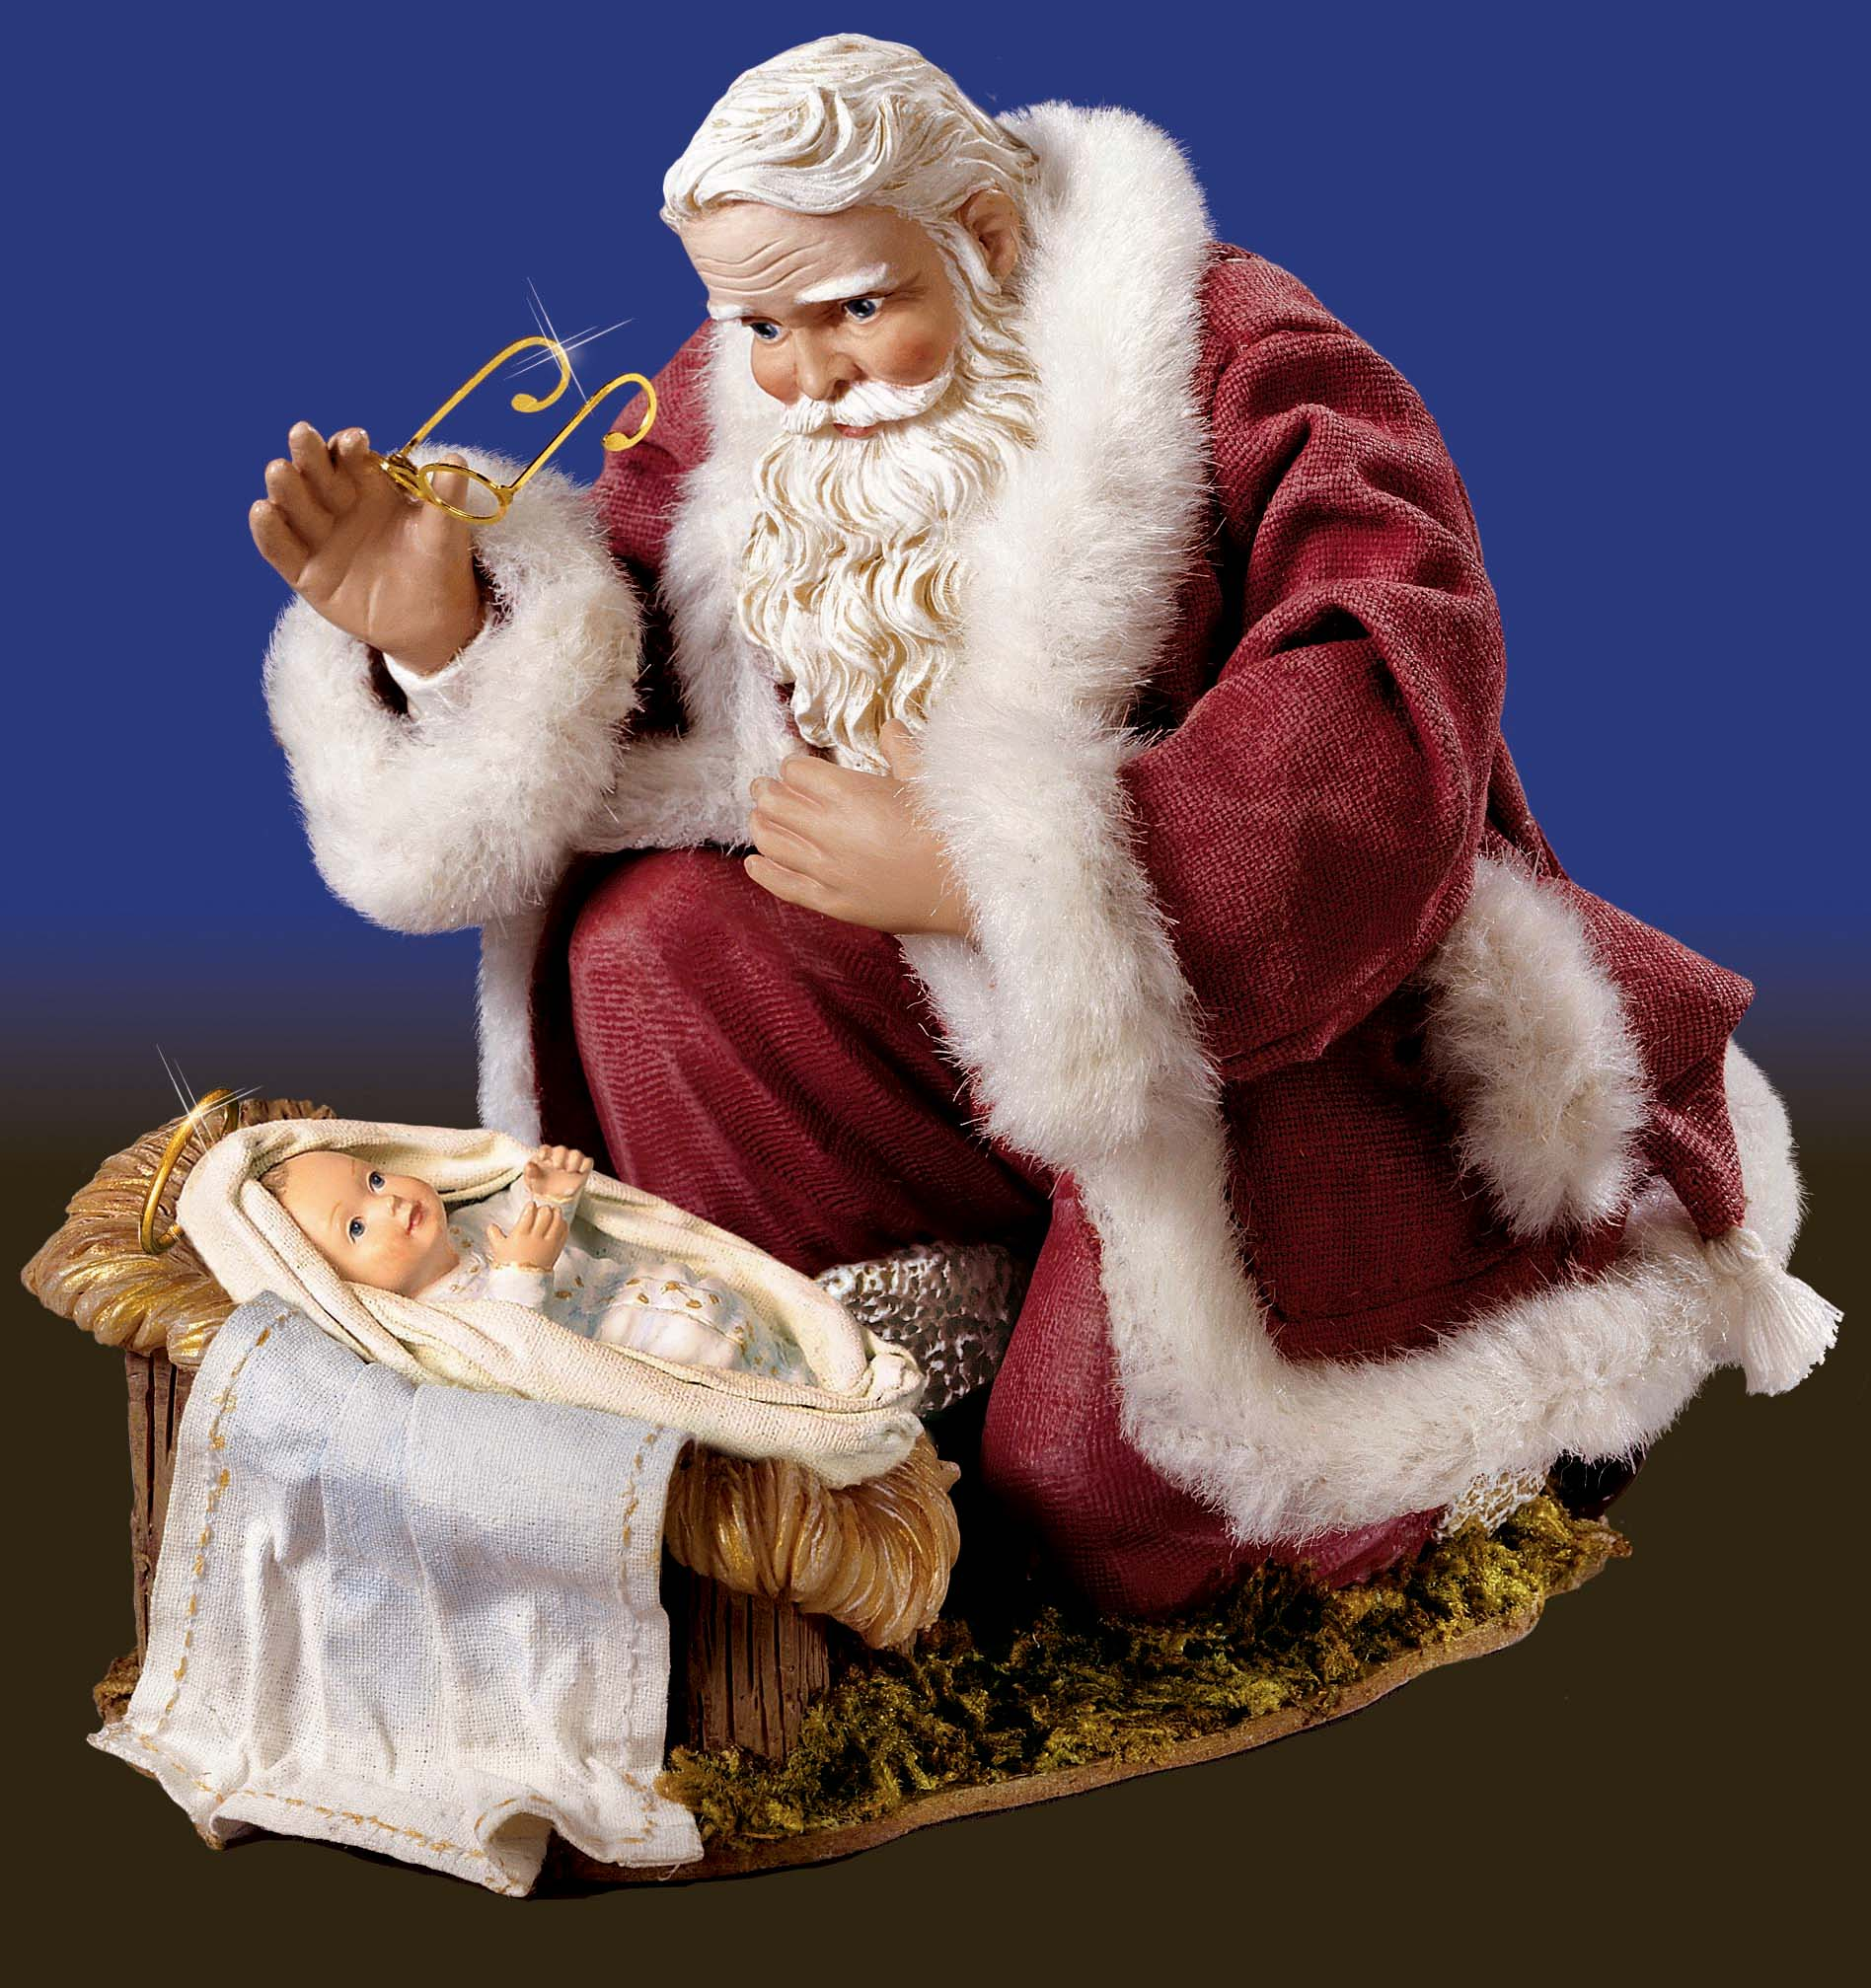 http://www.catholicsupply.com/CHRISTMAS/17310.jpg